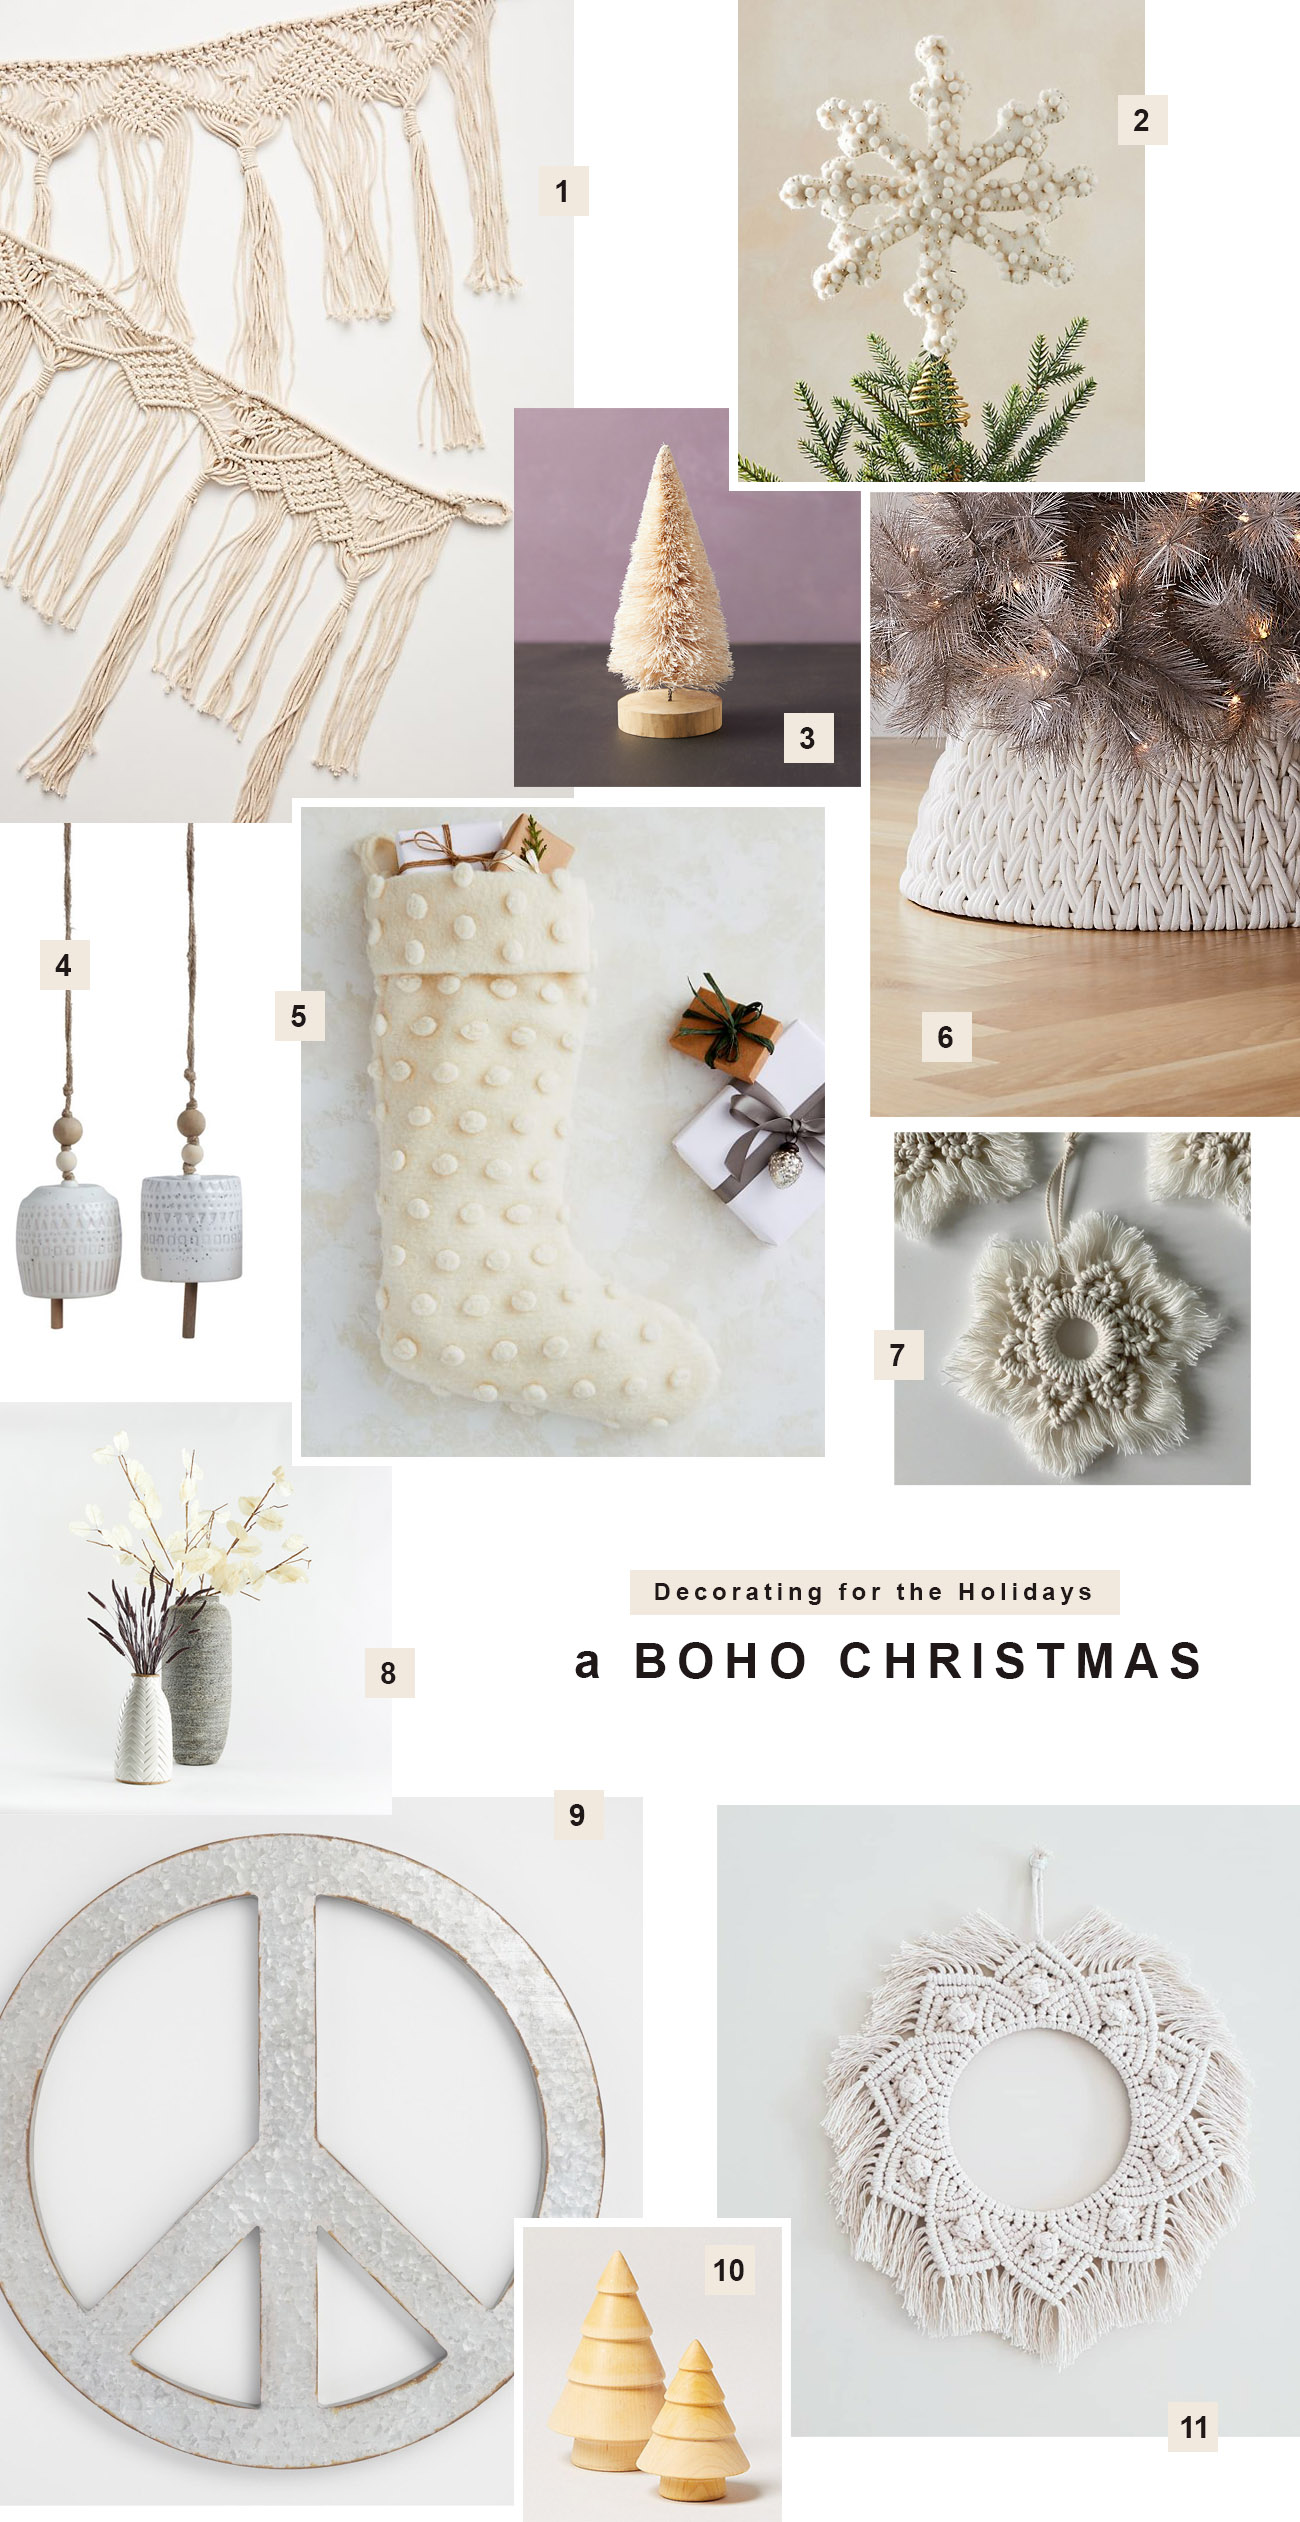 Boho Christmas decoration